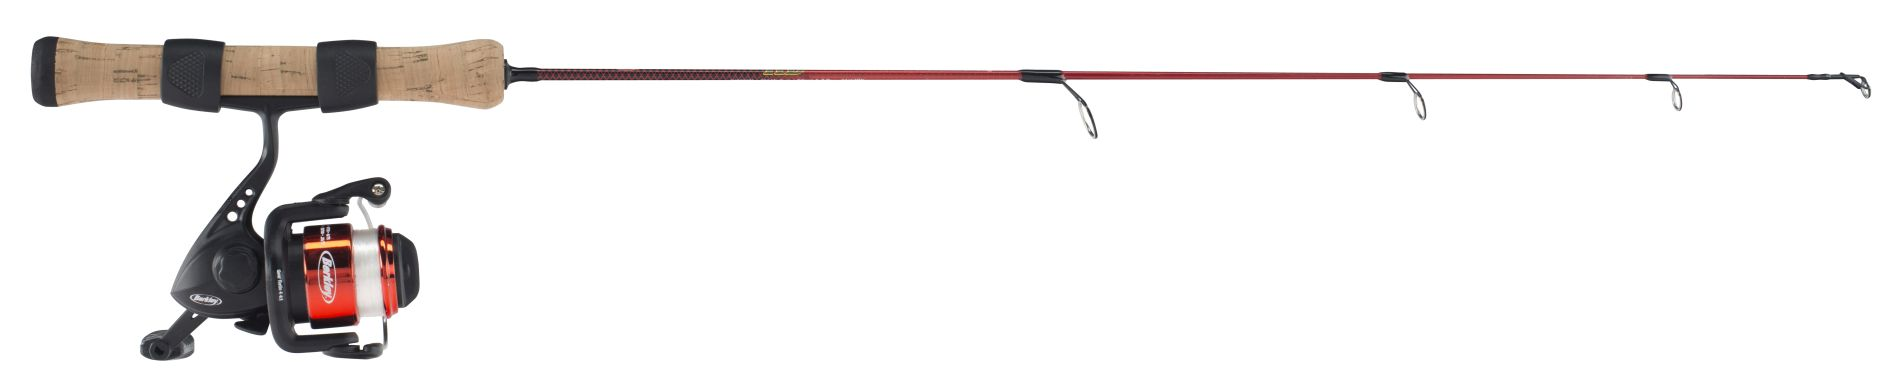 "BERKLEY Prut na dírky Berkley Cherrywood Ice 26"" UL"